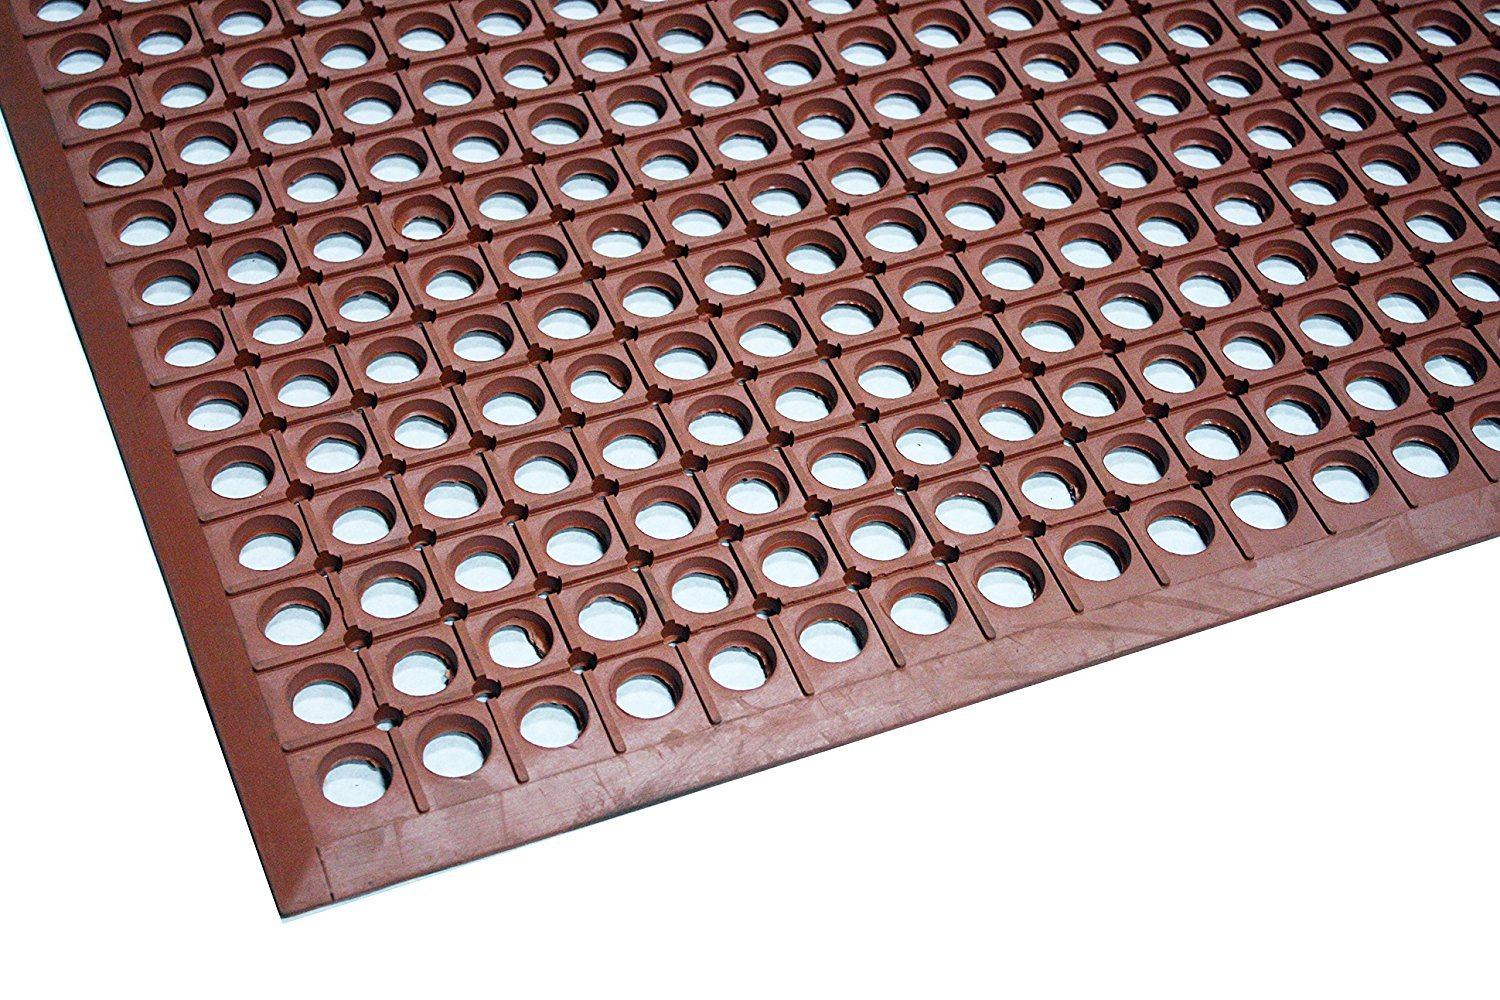 Durable Workstation Light Rubber Anti-Fatigue Drainage Mat for Wet Areas, 3' x 5', Red